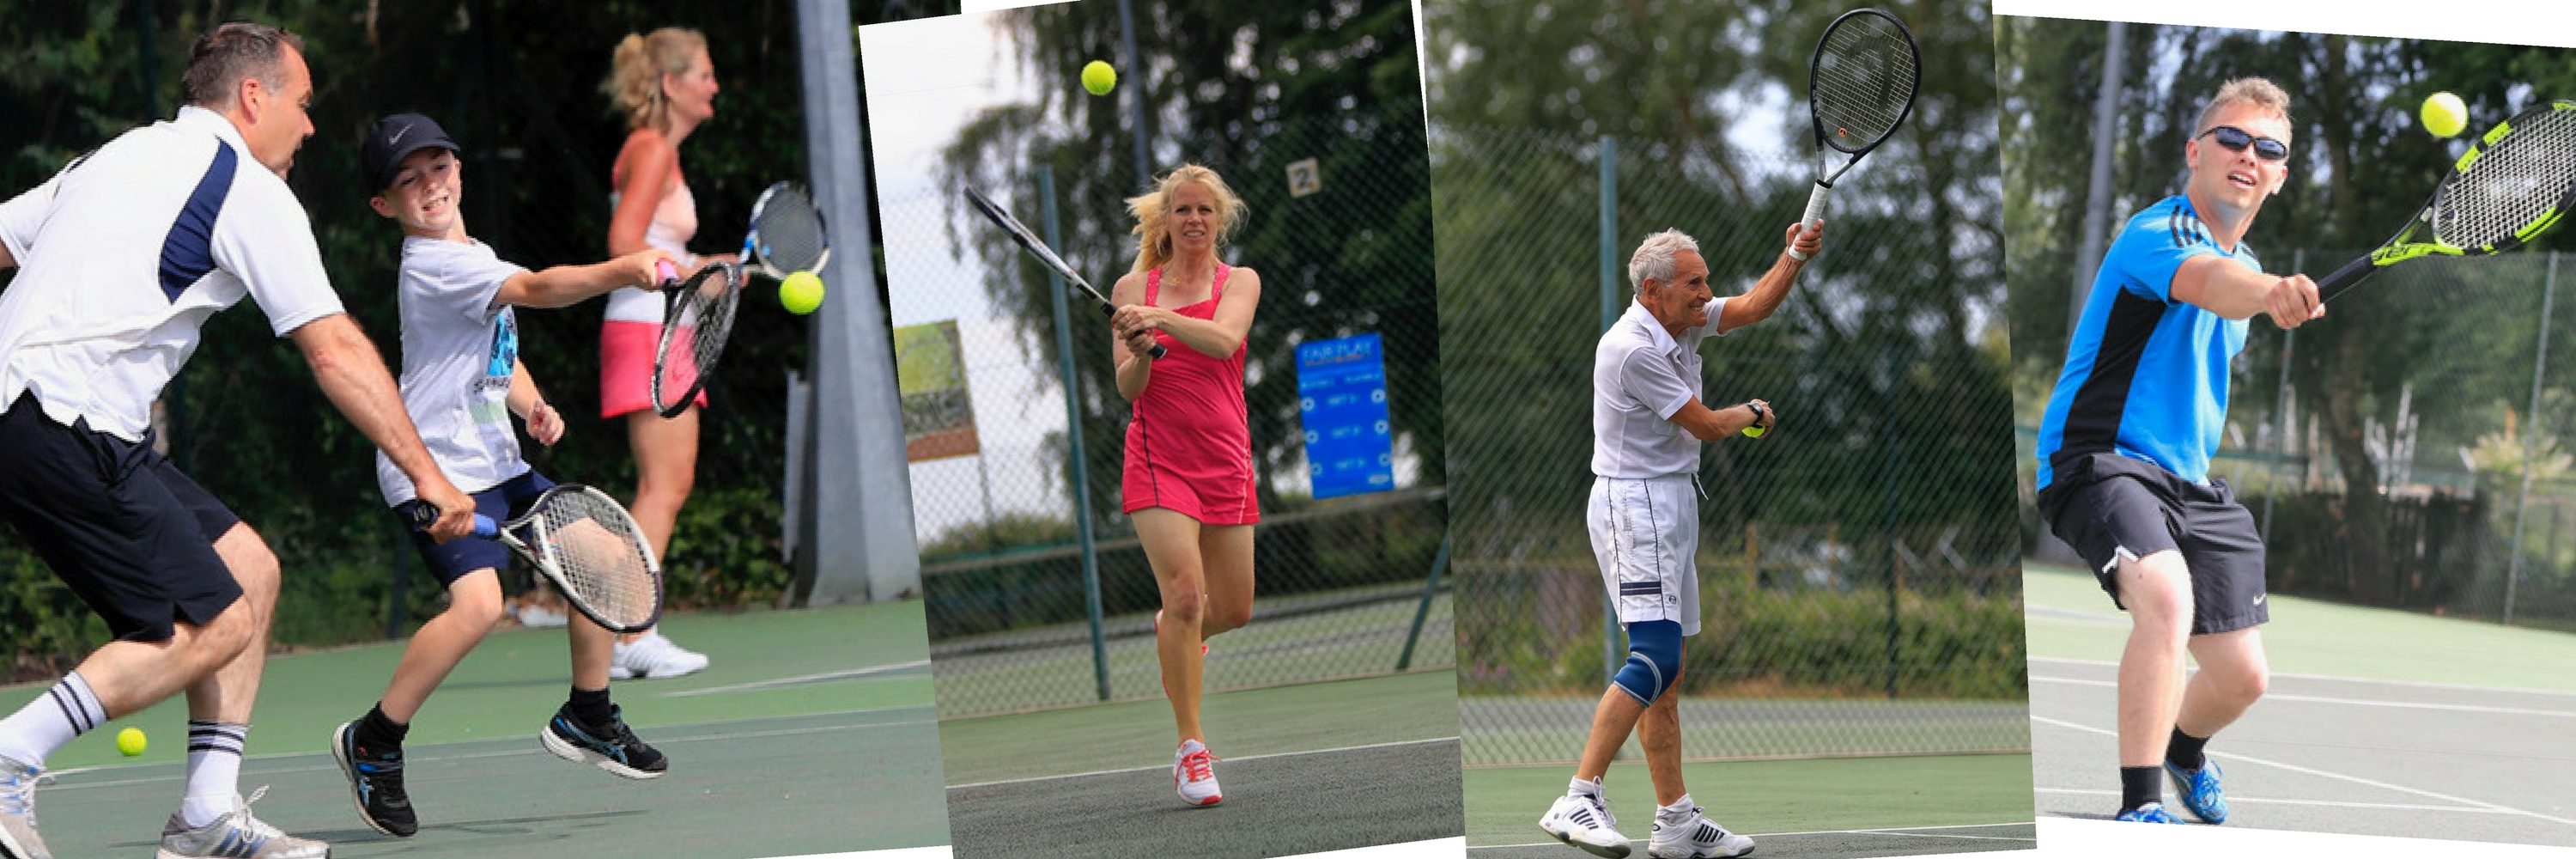 Woodbridge Tennis club open to all players